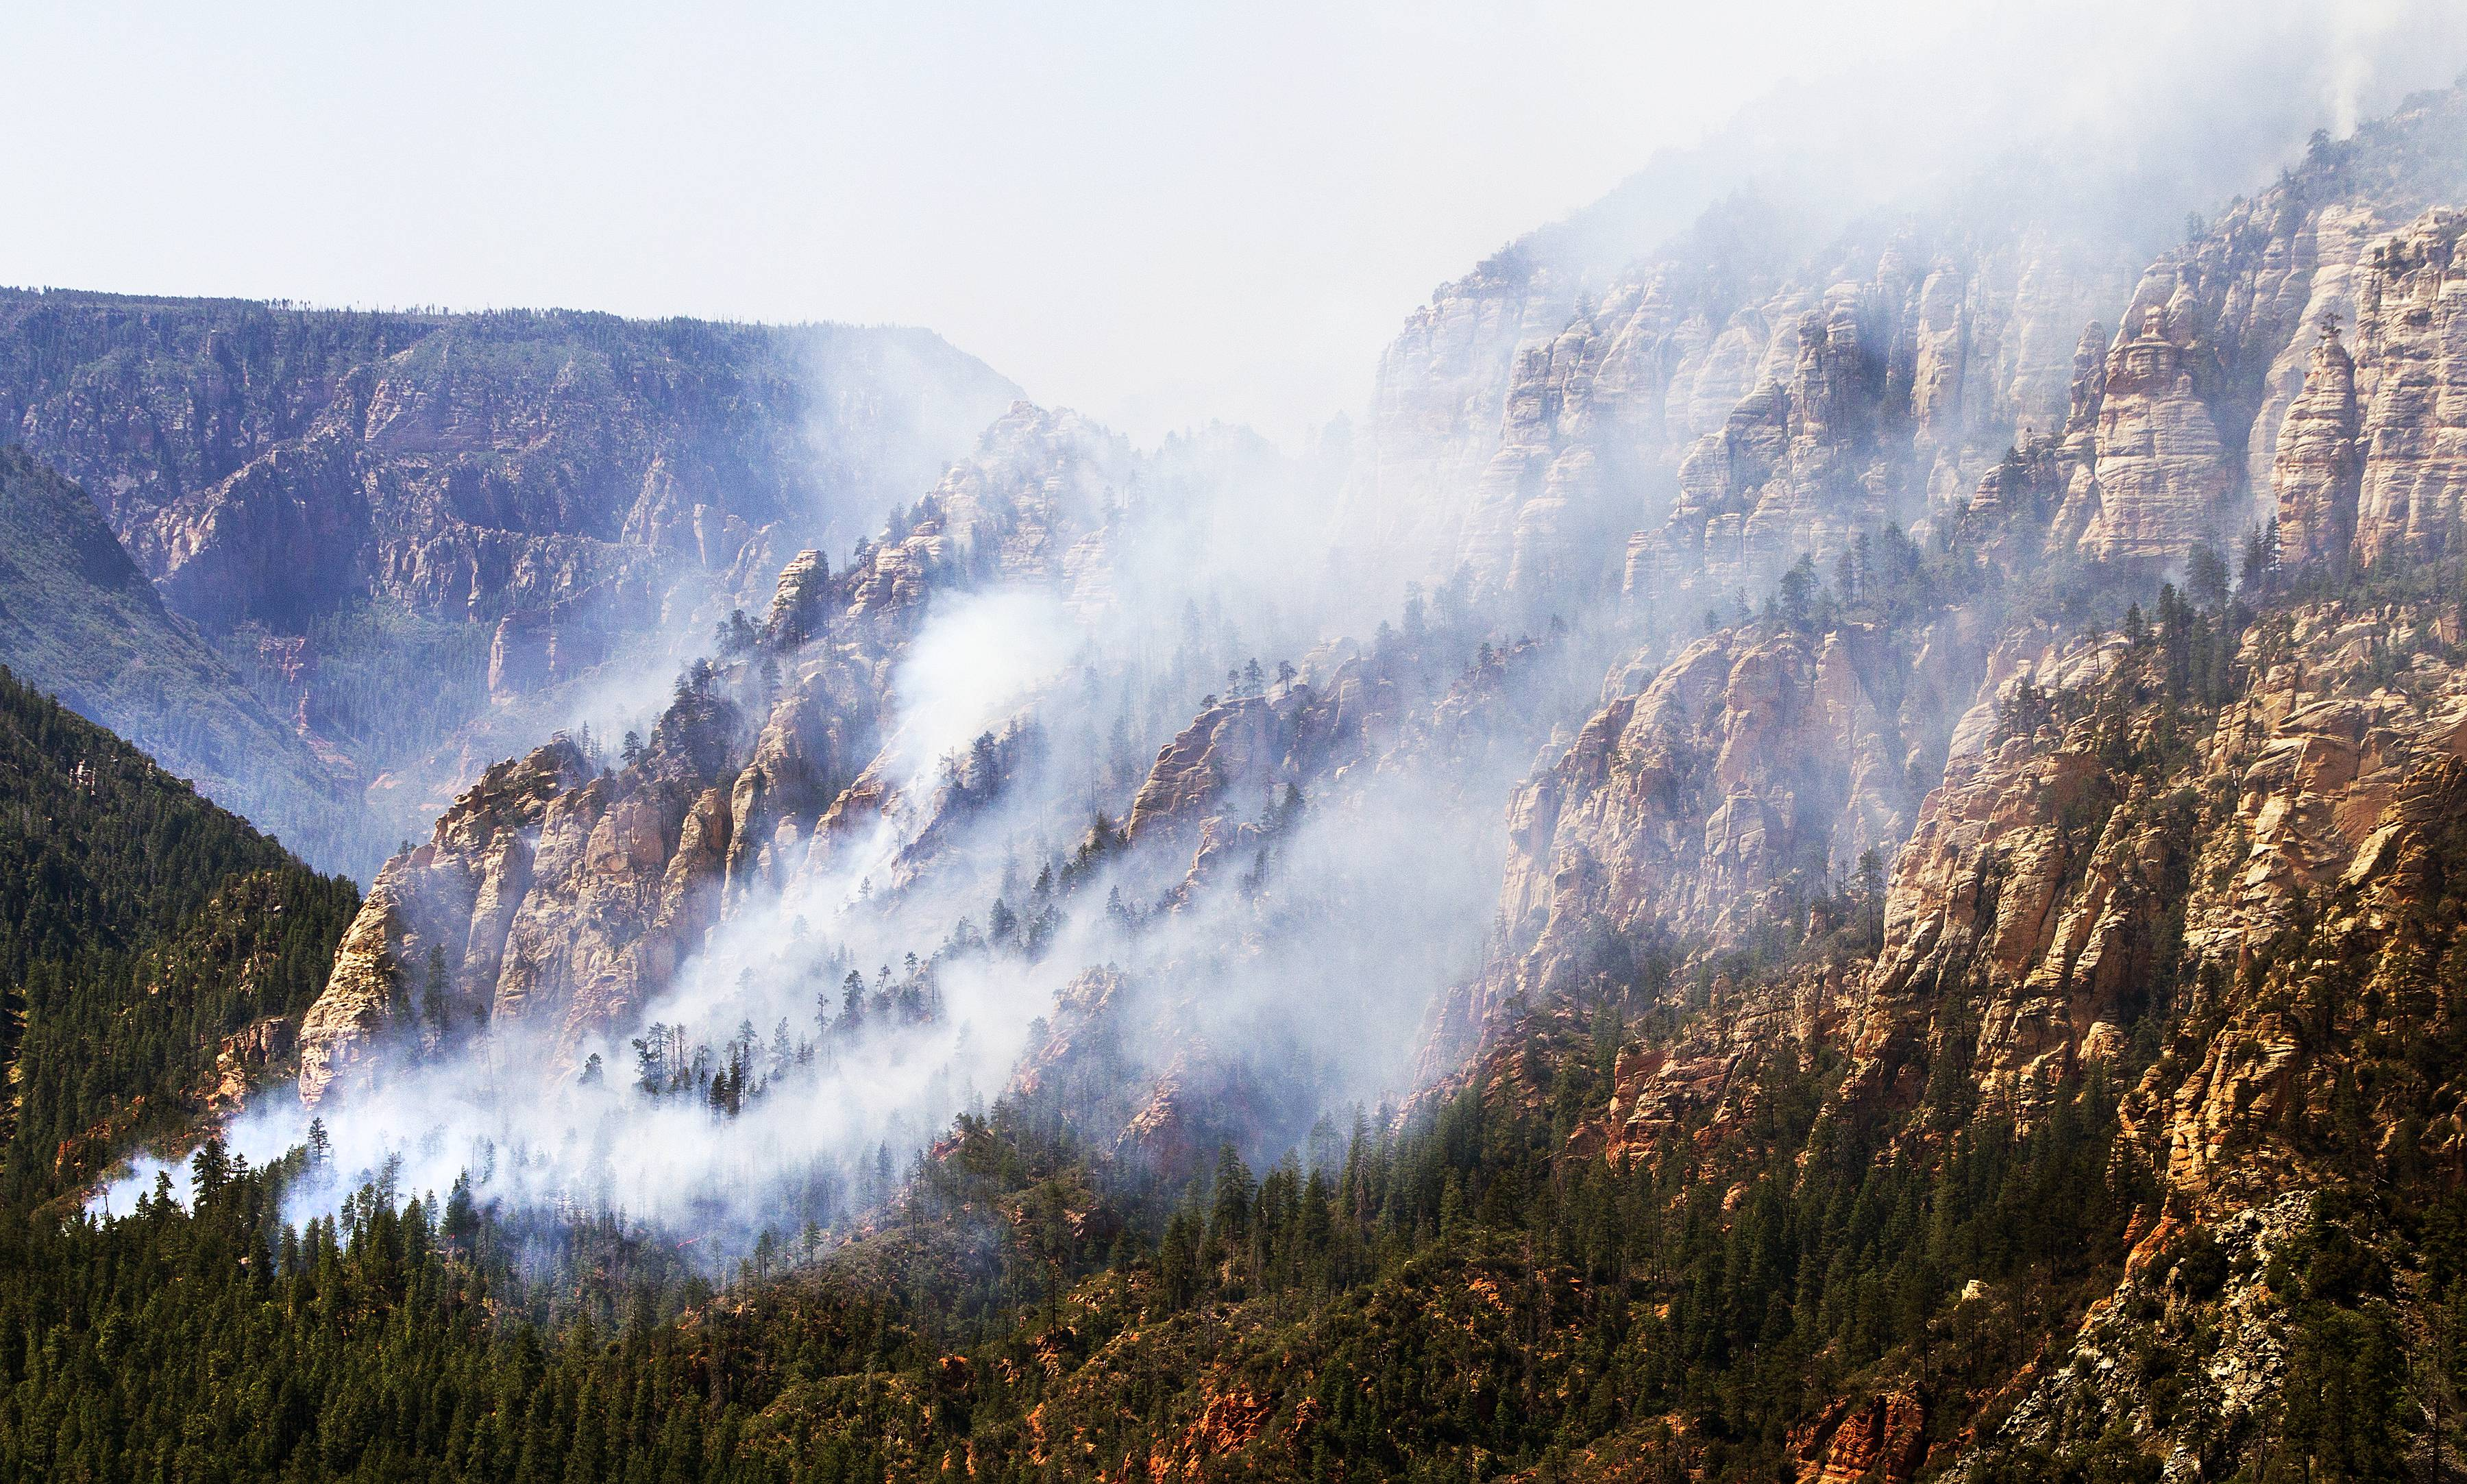 A wildfire that started in a scenic canyon snaked toward Flagstaff on Thursday, prompting residents of outlying areas to prepare to flee and blanketing the city in smoke.